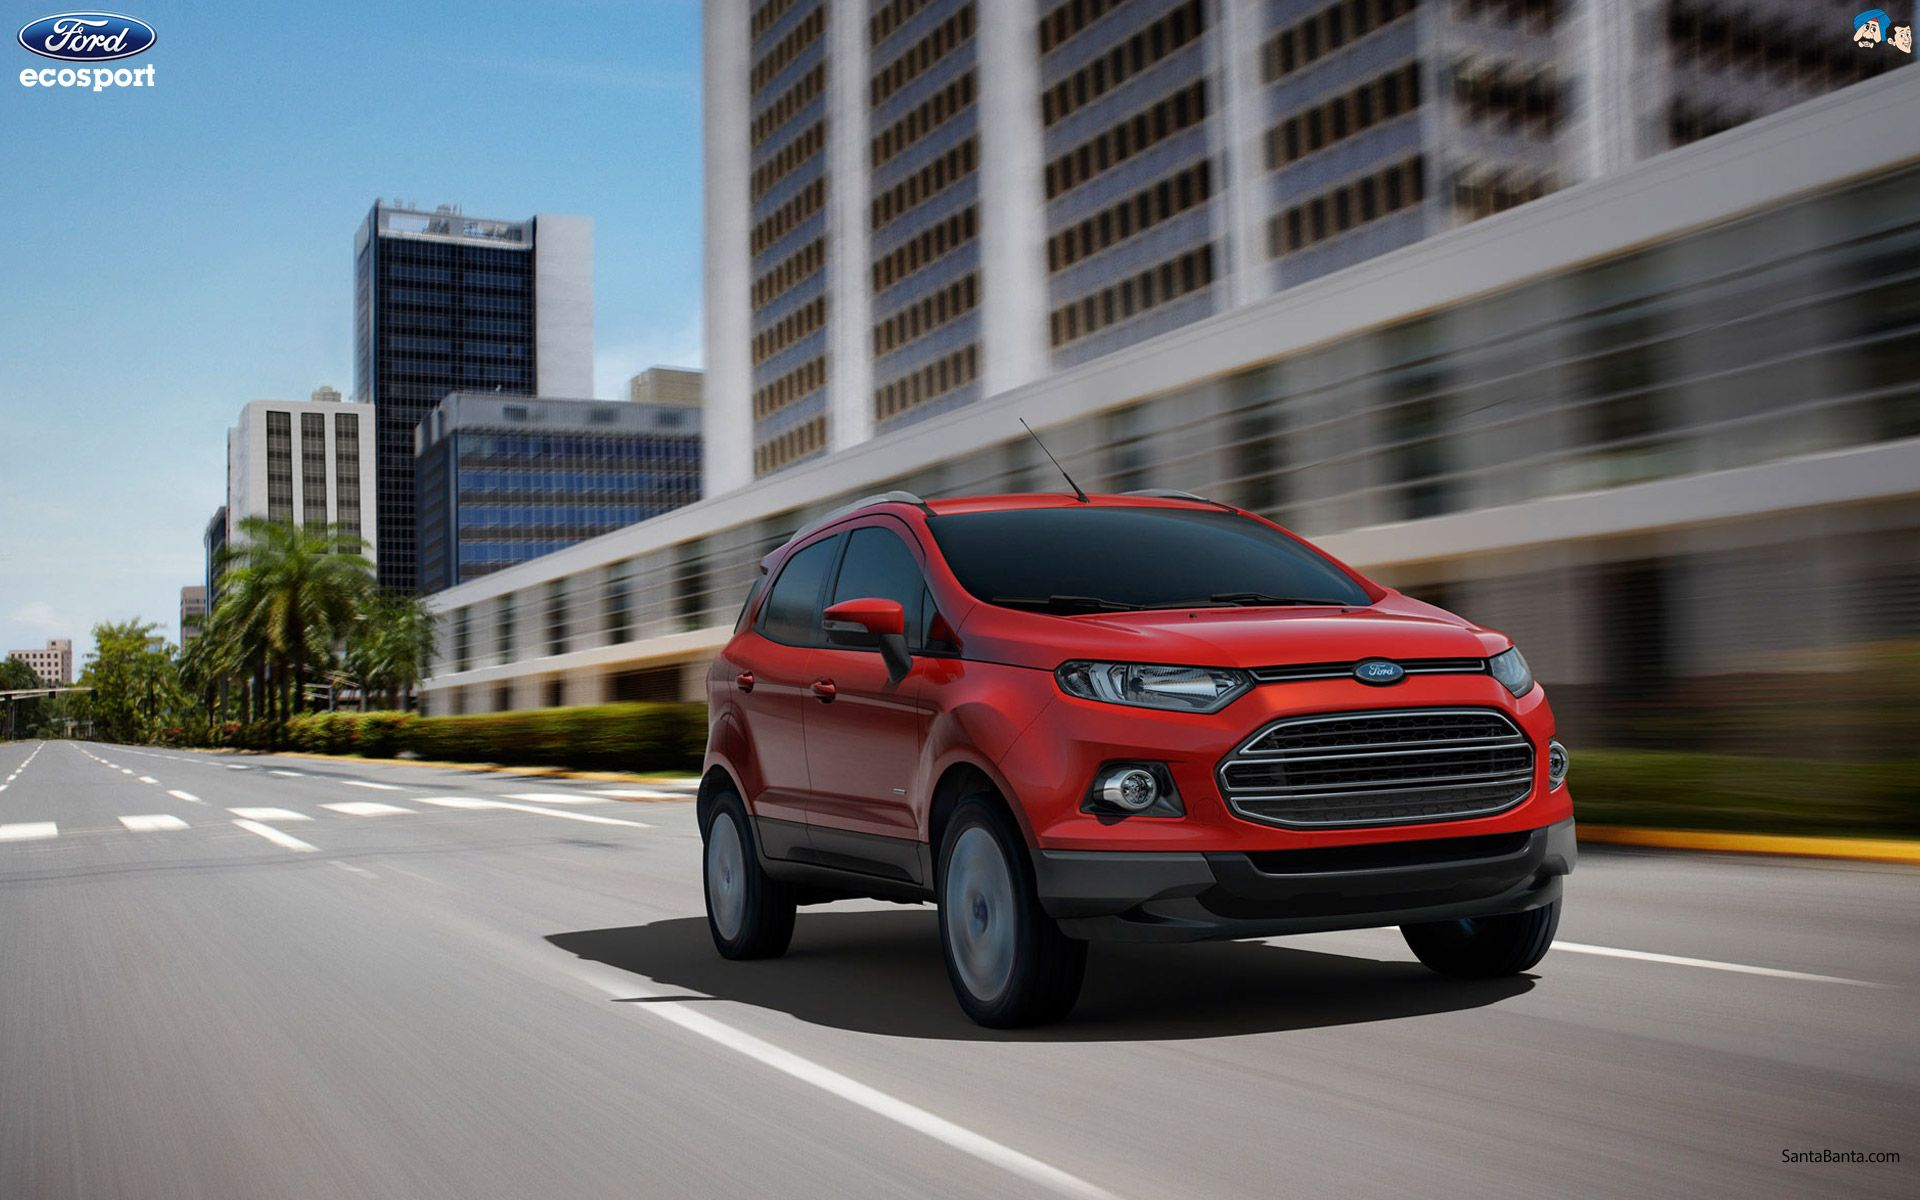 Ford Ecosport Ford ecosport, New cars, Car